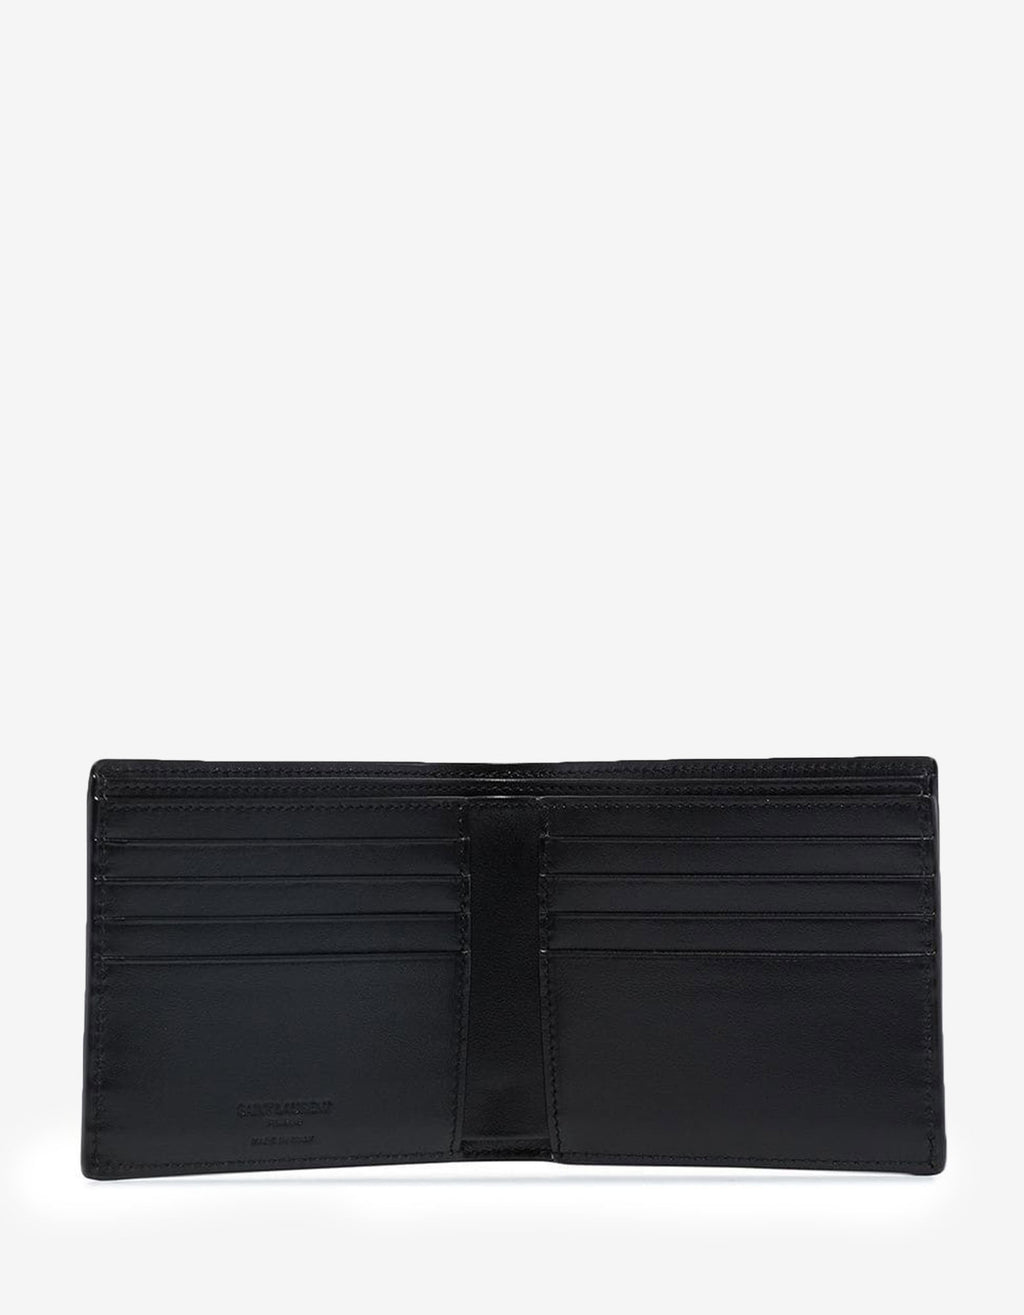 Tortoiseshell Print Patent Leather Billfold Wallet